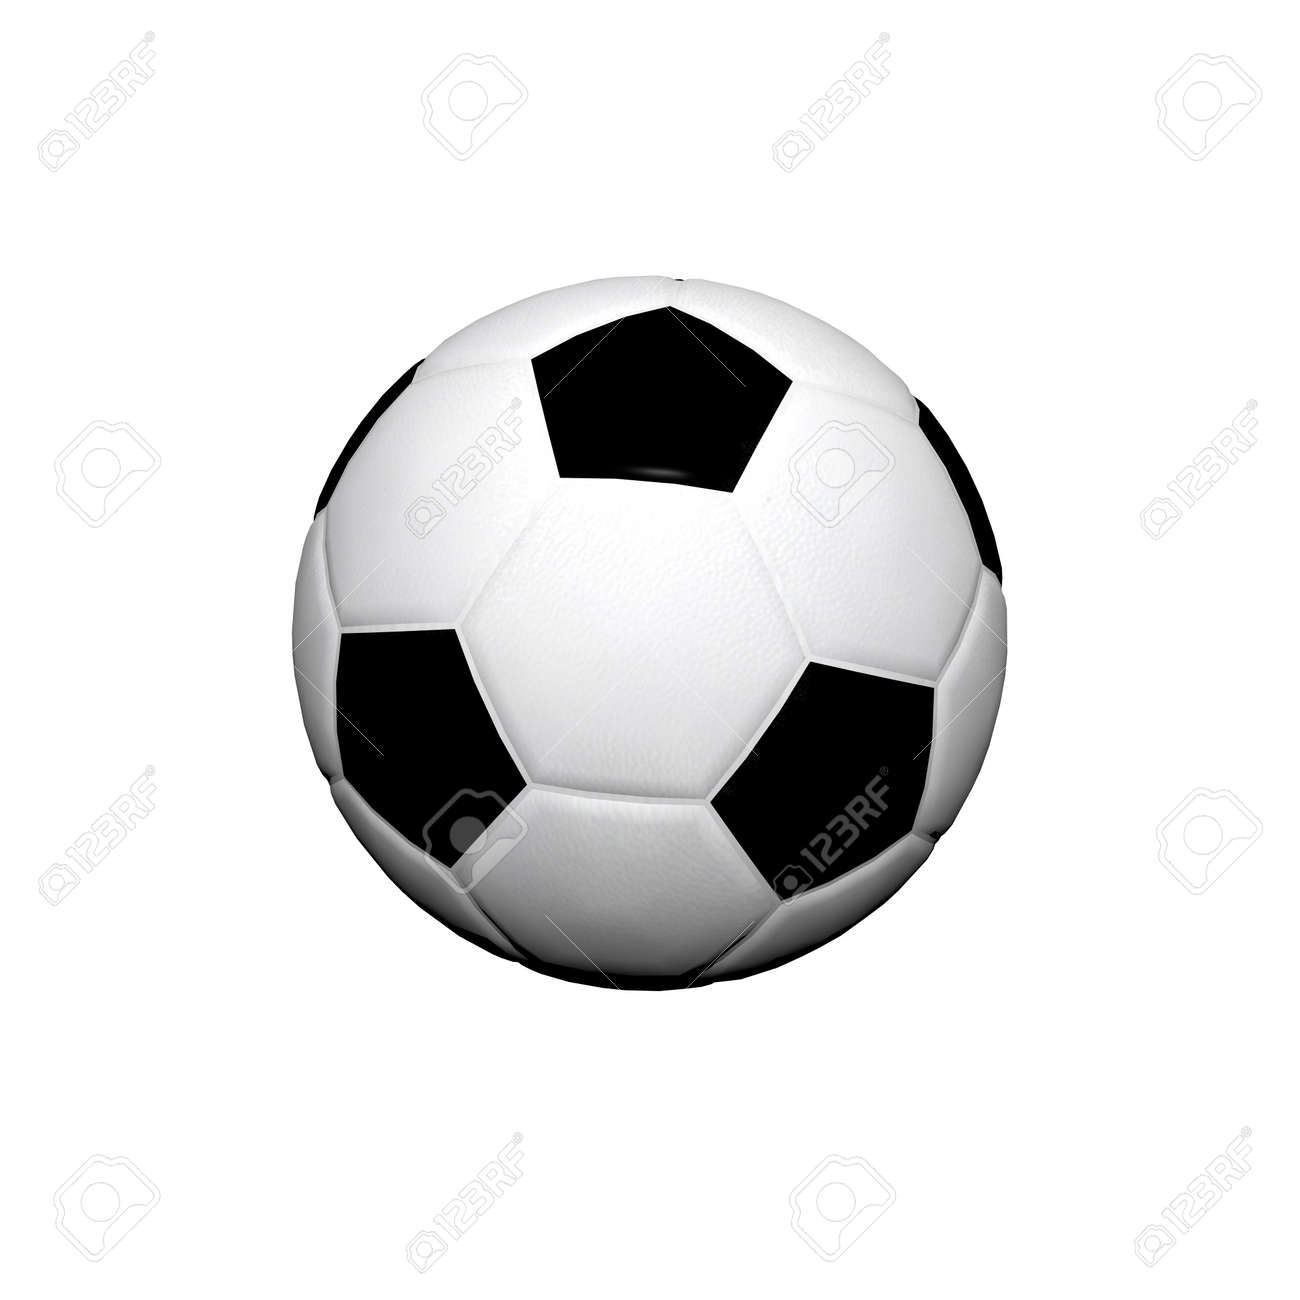 3d Soccer ball Stock Photo - 3879064